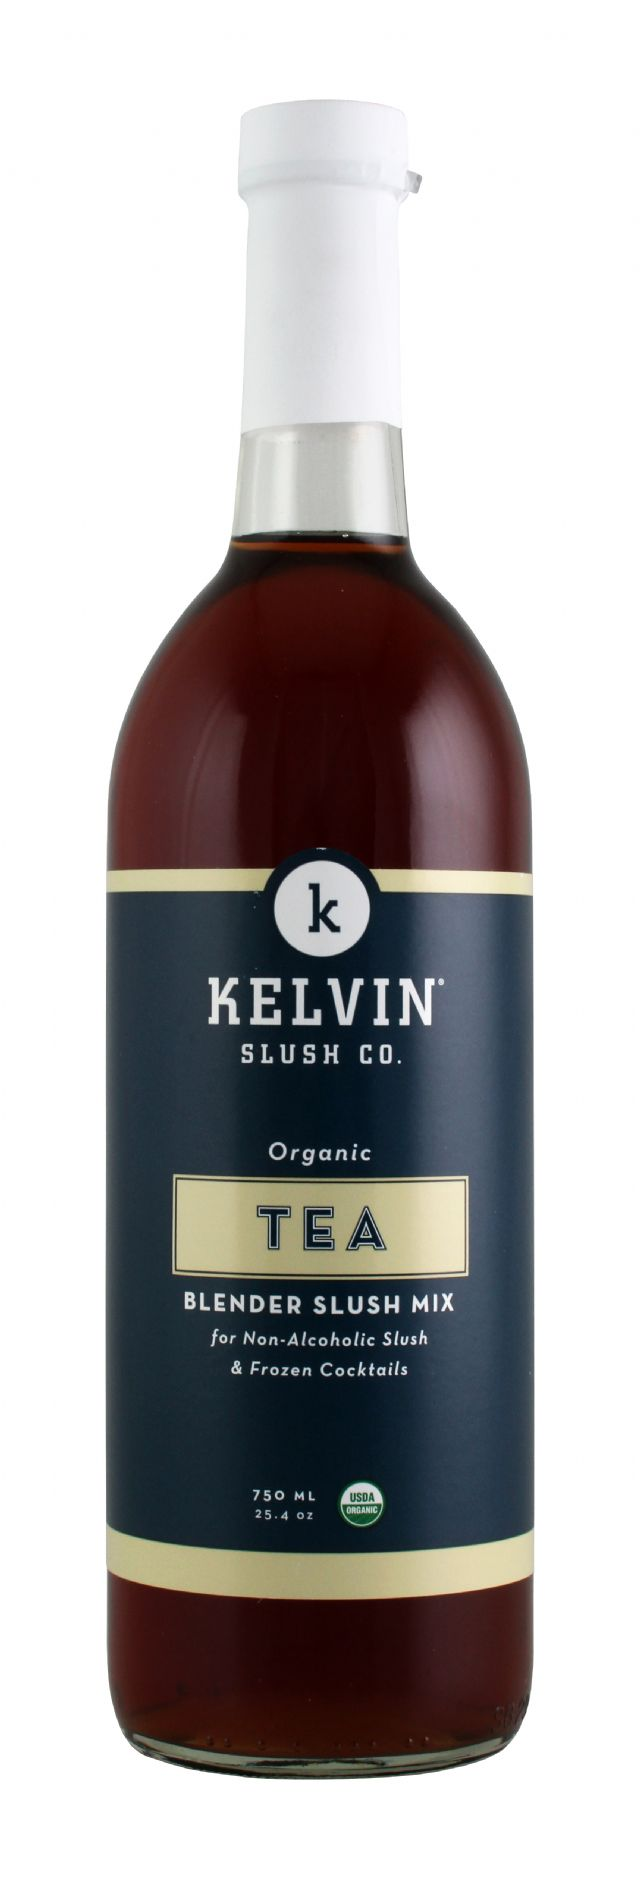 Kelvin Slush Co.: Kelvin Tea Front